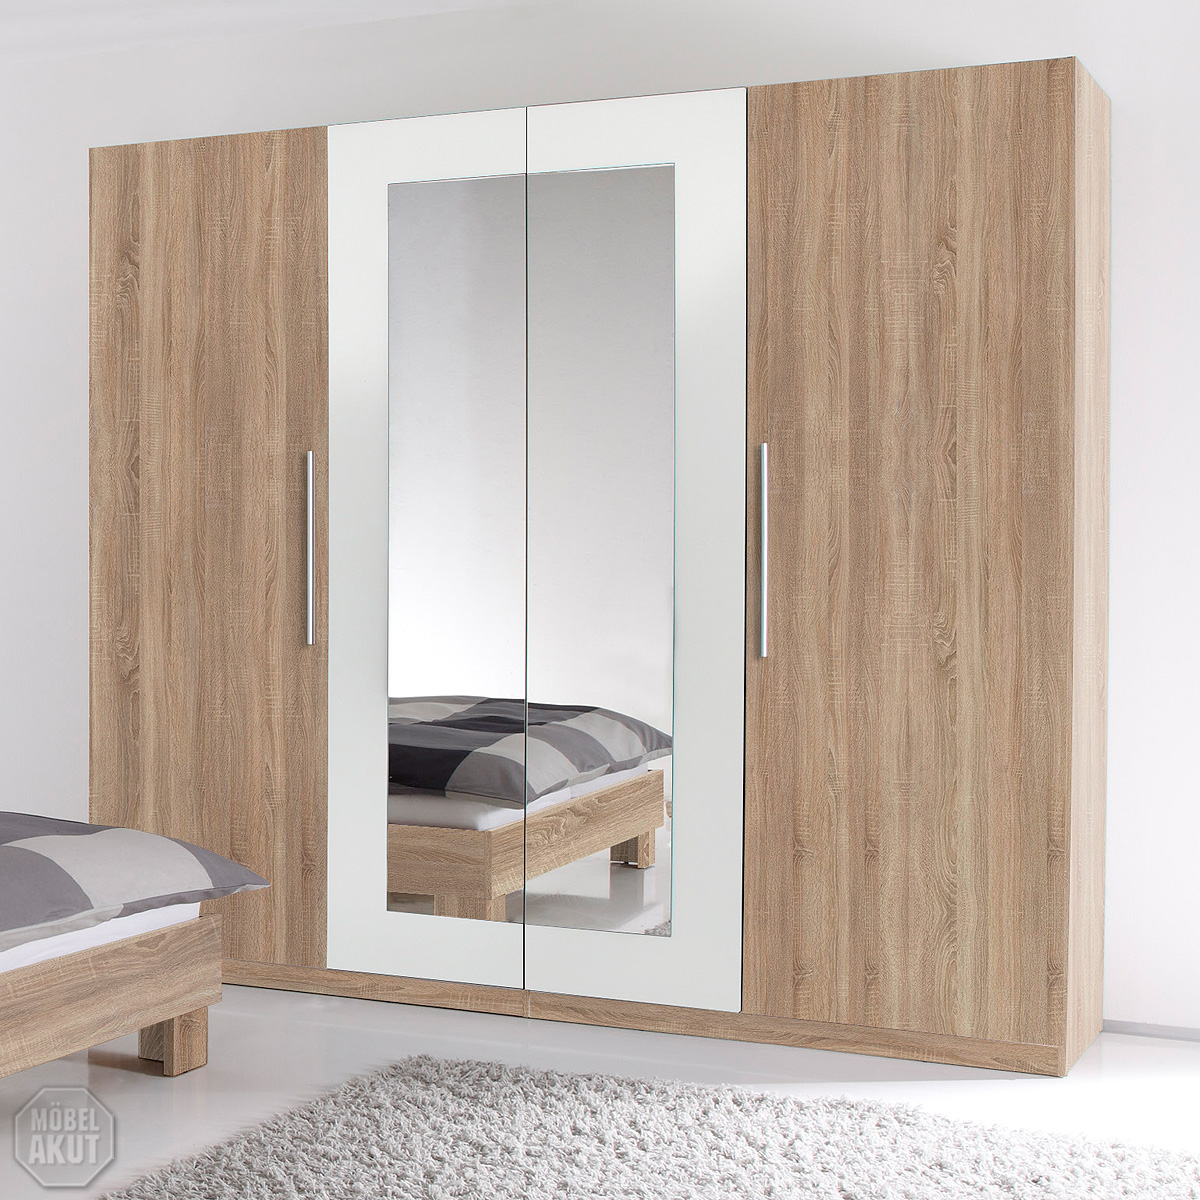 kleiderschrank martina schrank sonoma eiche s gerau und. Black Bedroom Furniture Sets. Home Design Ideas